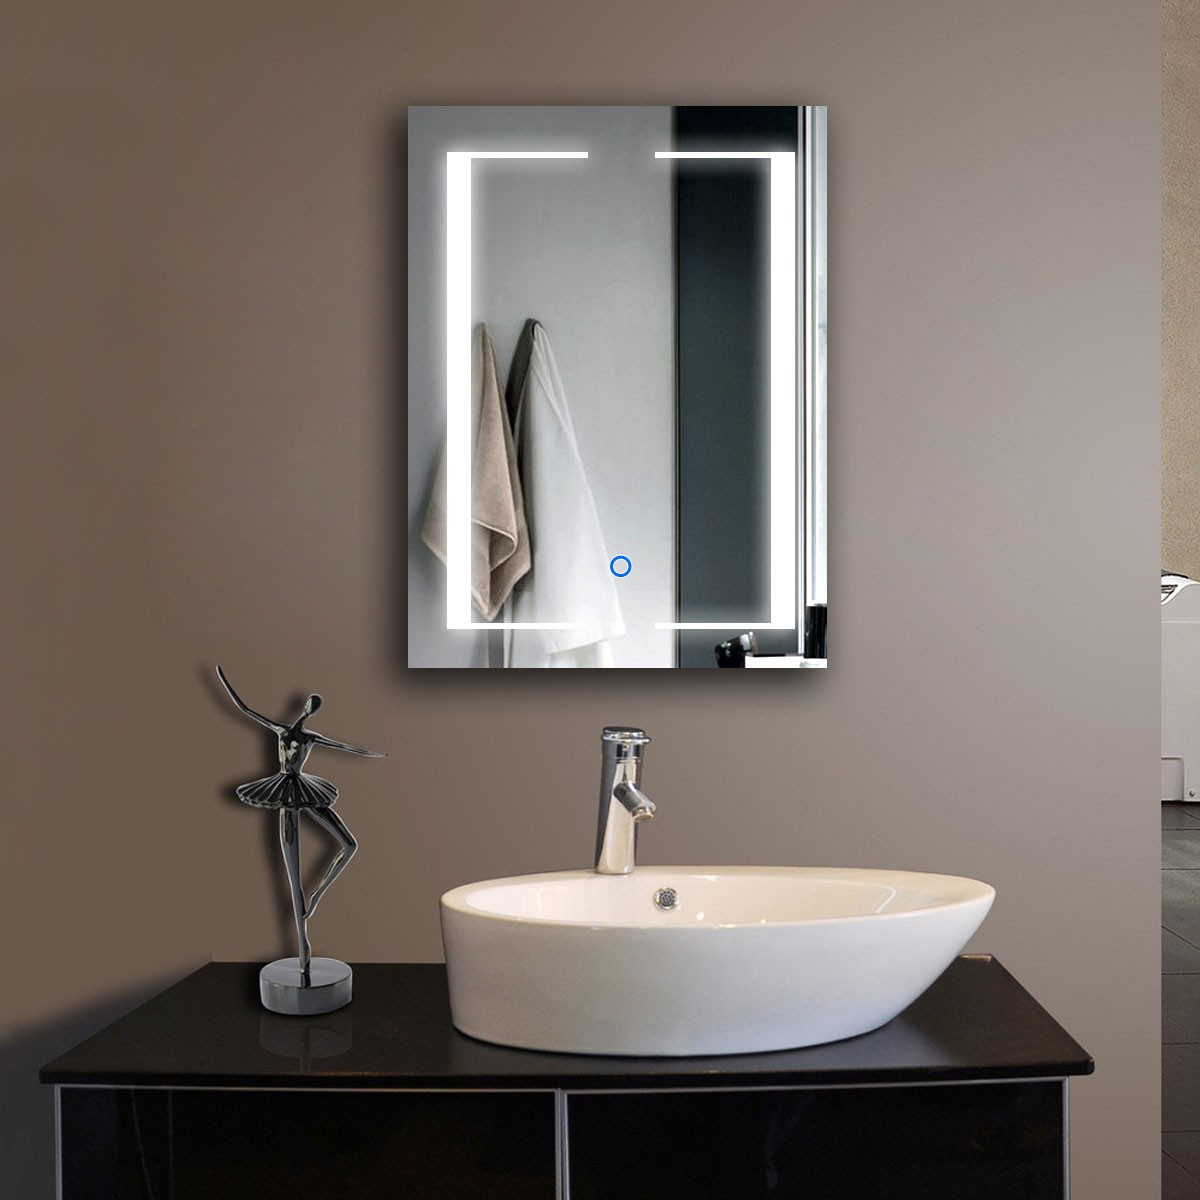 Illuminated Bathroom Mirror Decoraport 32